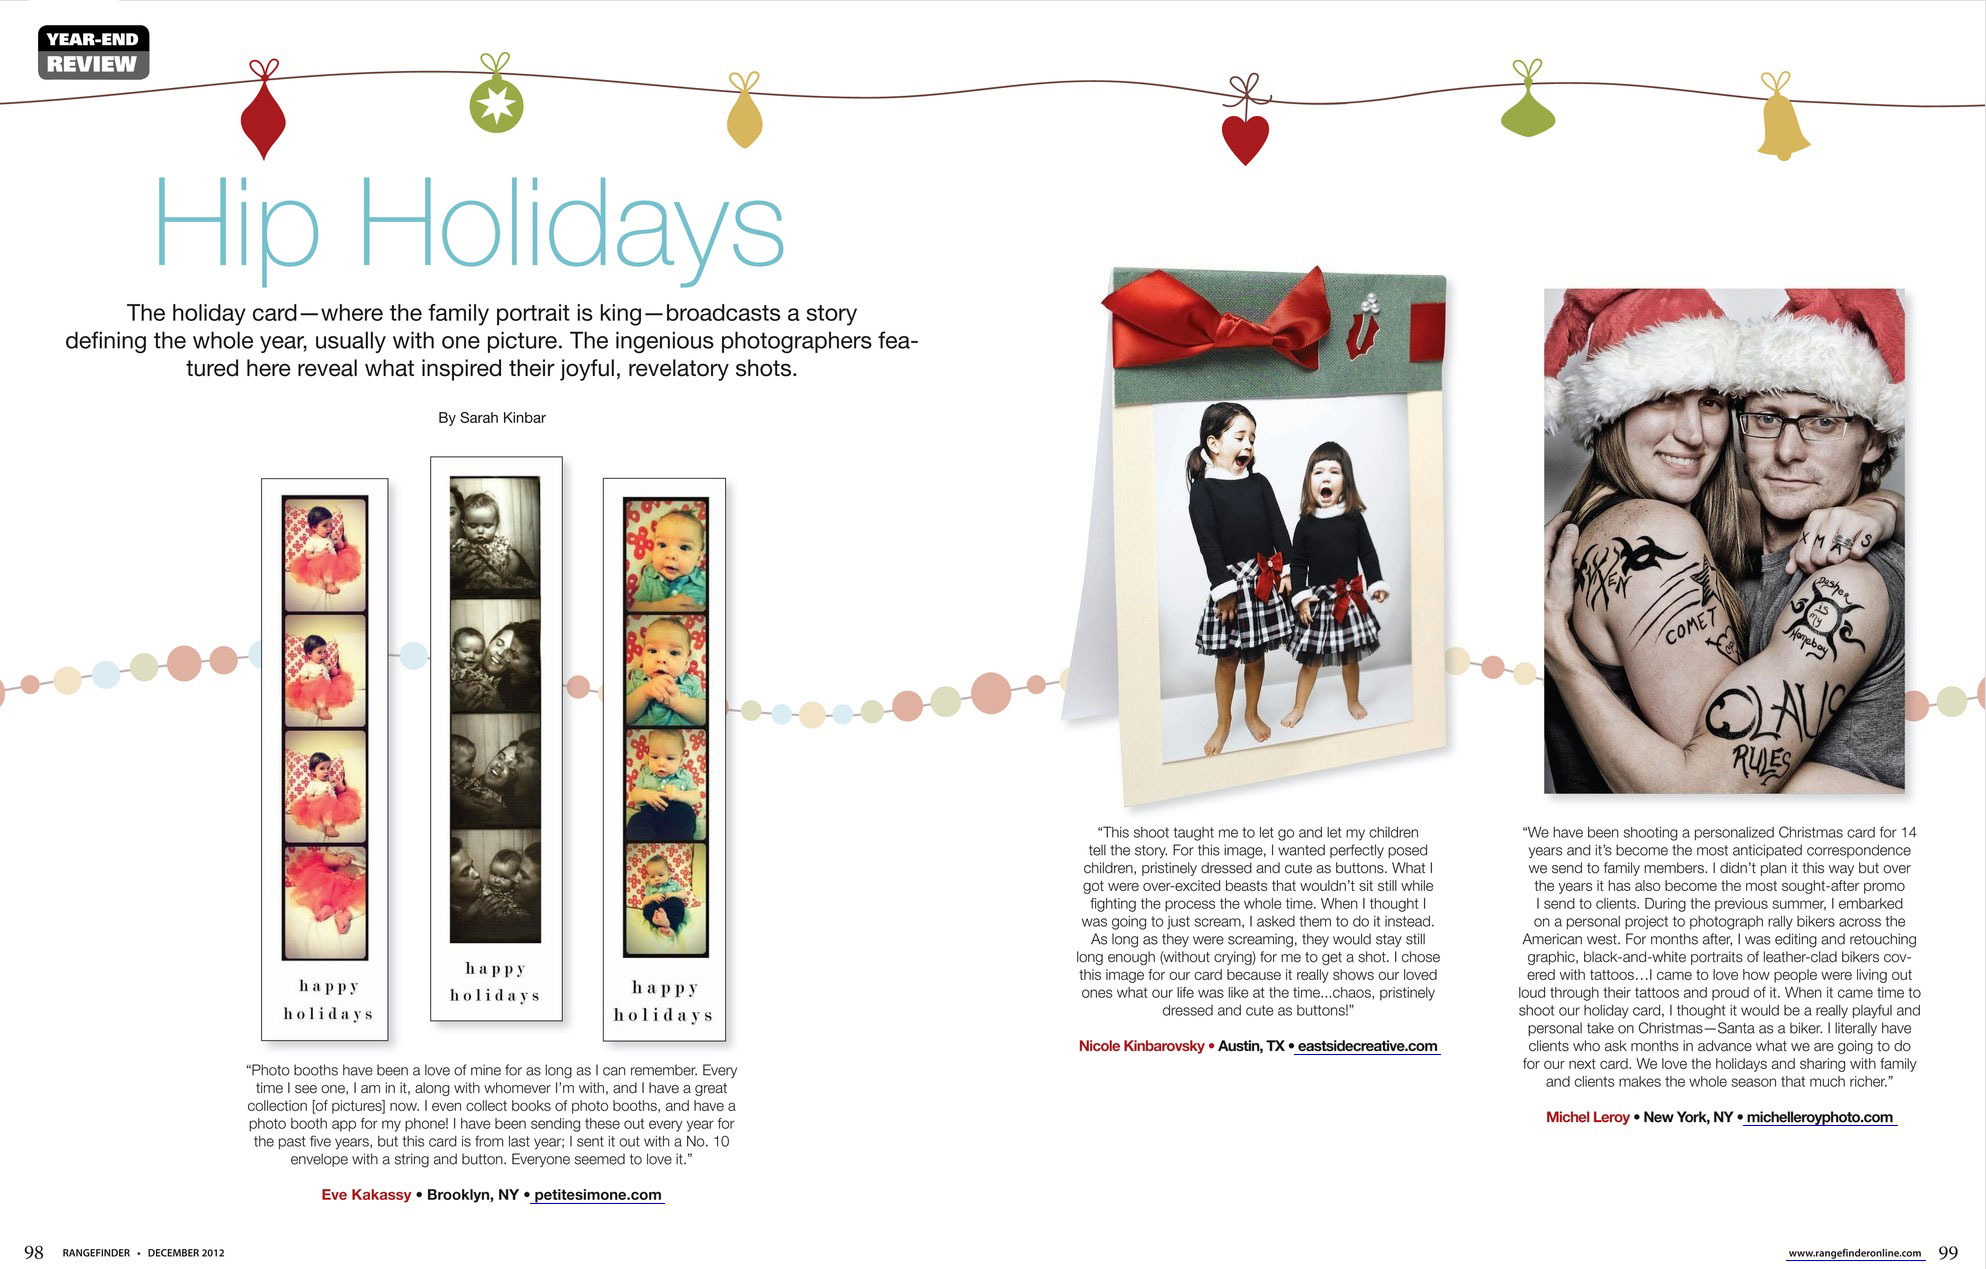 Michel Leroy holiday card in Rangefinder Magazine